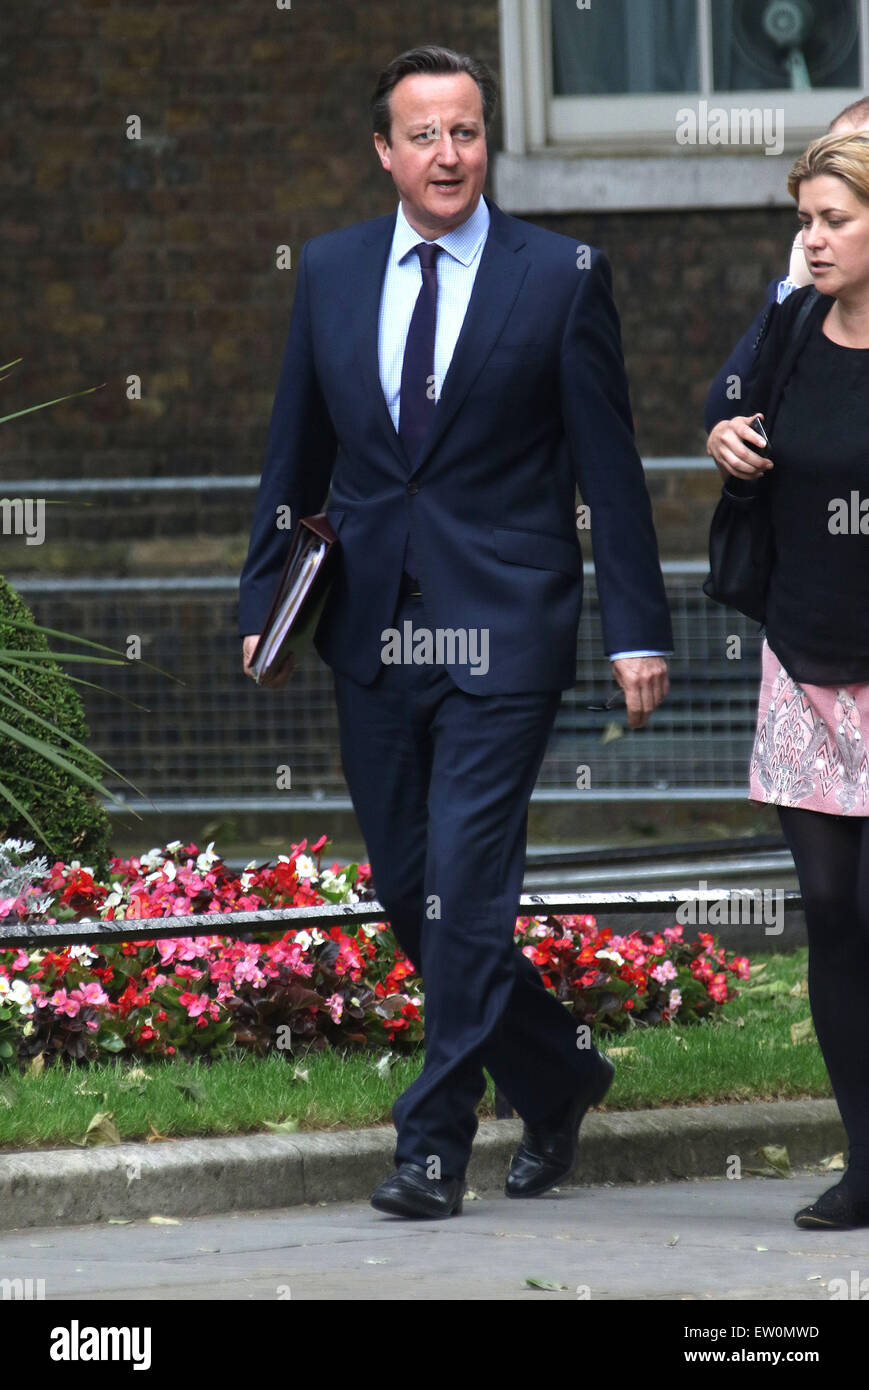 London, UK. 16th June, 2015. British Prime Minister David Cameron arrives at No.10 Downing Street for a meeting Stock Photo